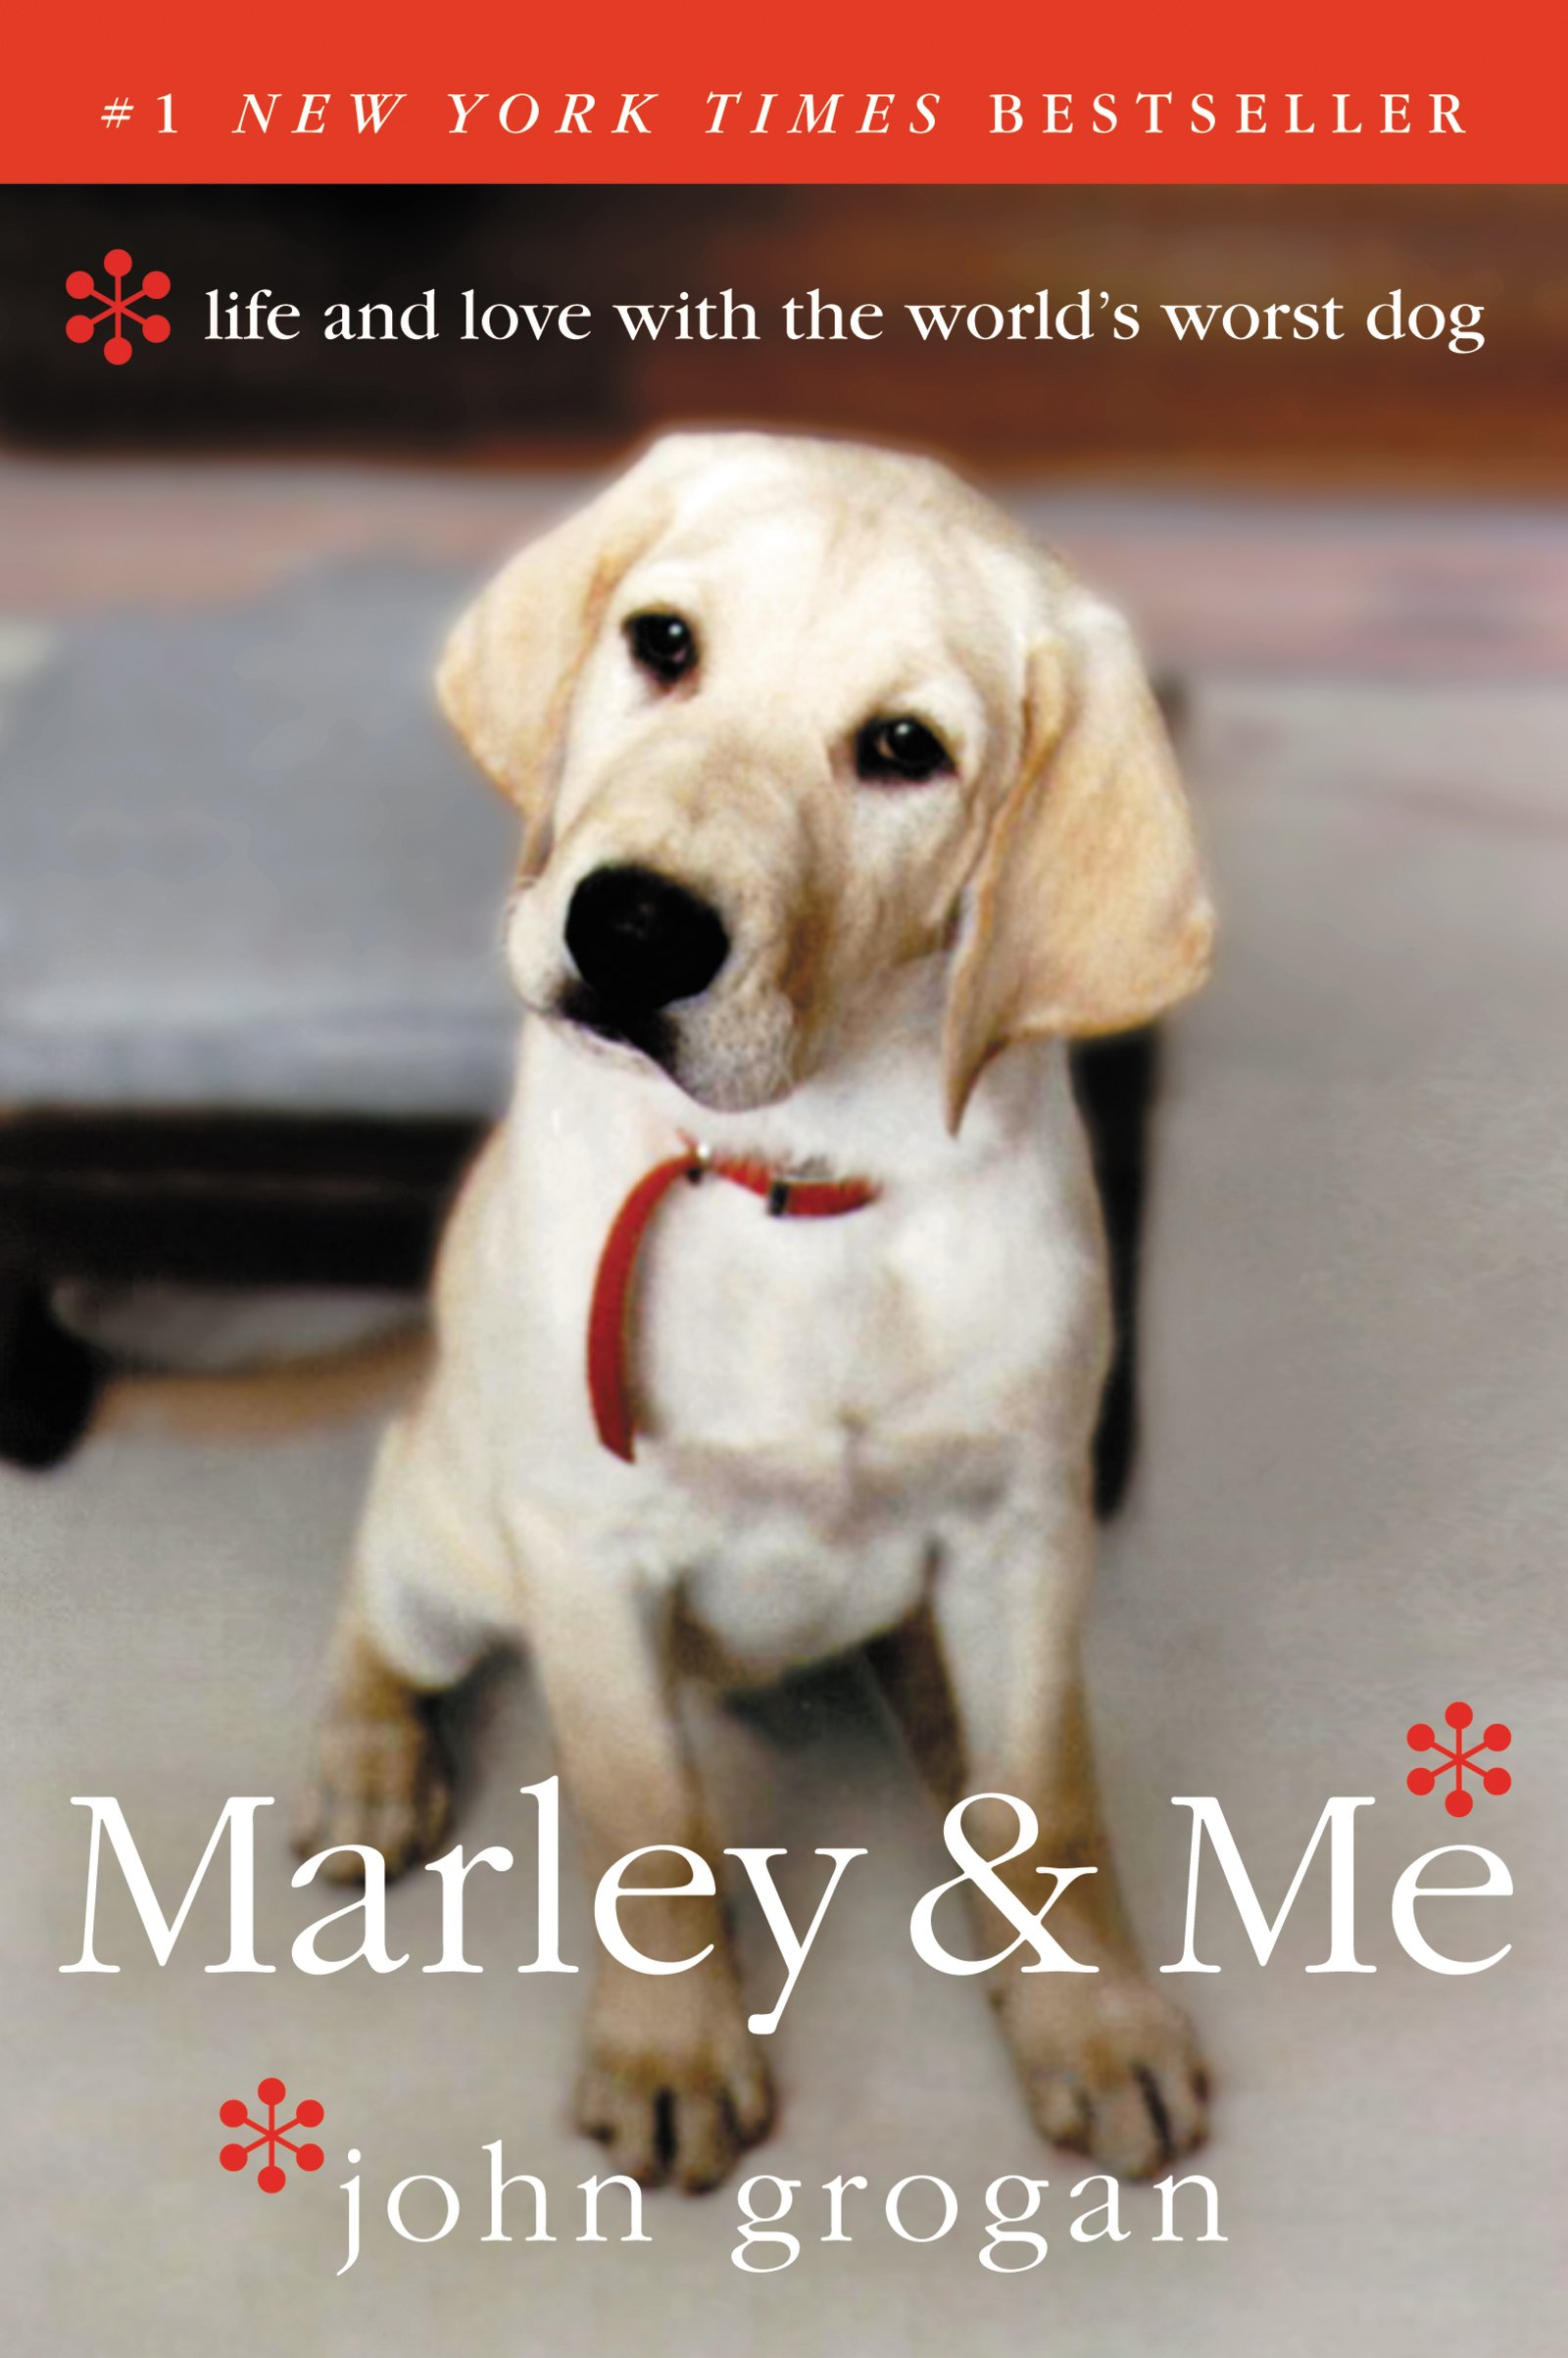 marley and me by john grogan.jpg